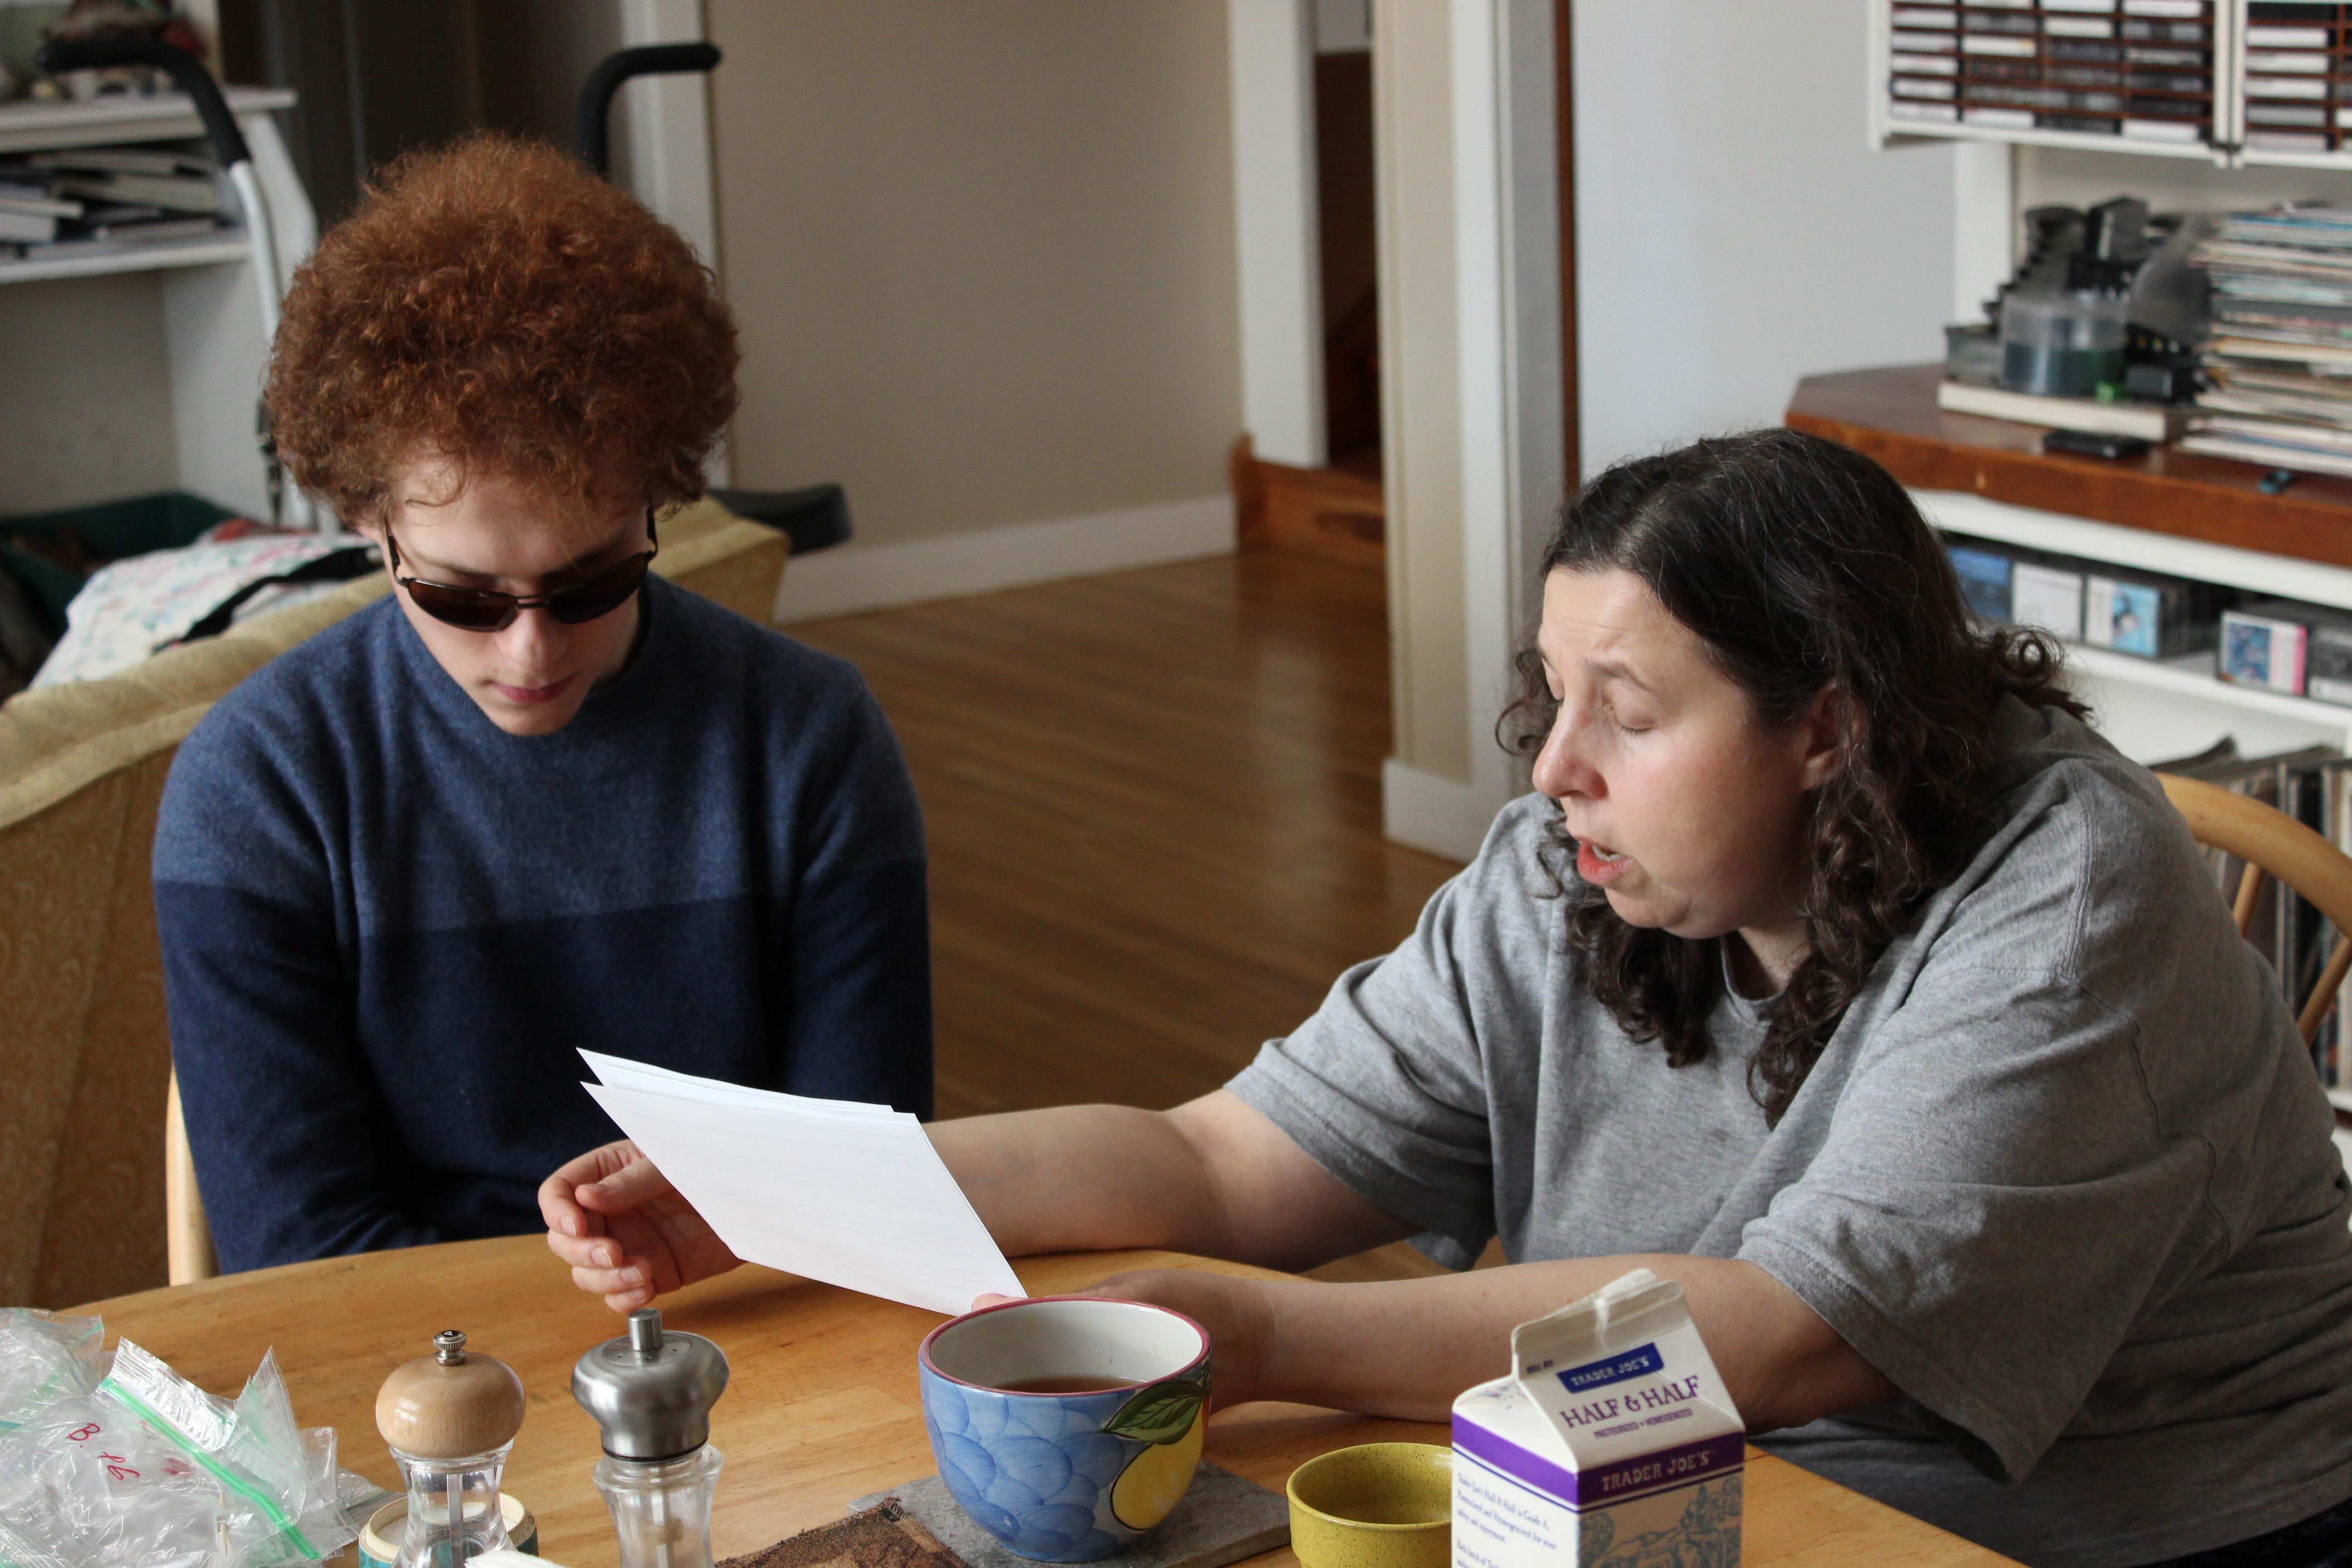 Shifrin's family friend, Lilya Finkel, surprised him for his 13th birthday with braille LEGO building instructions. (Courtesy: Matthew Shifrin)